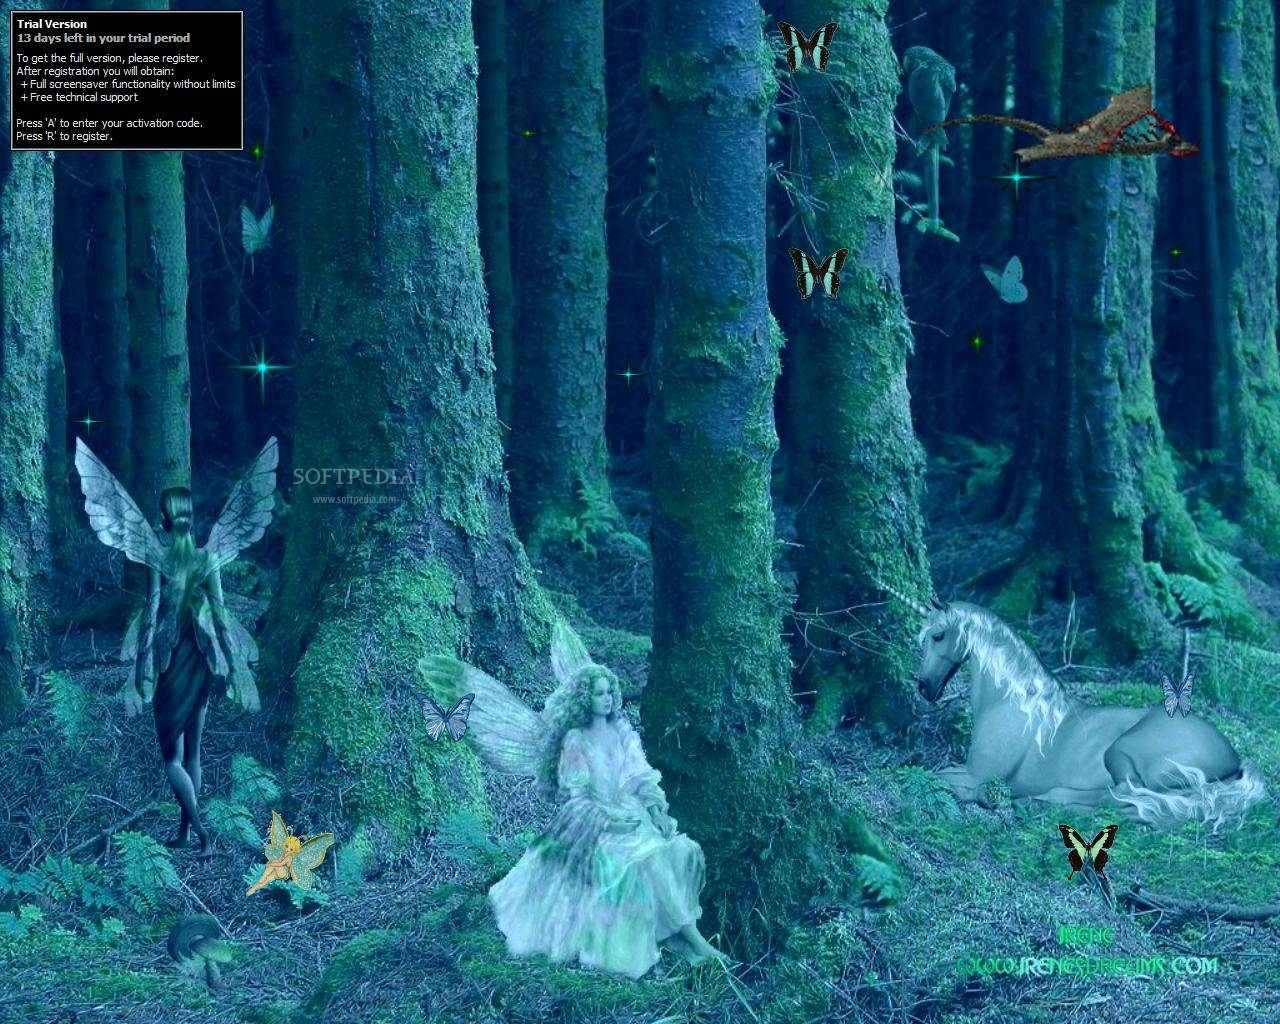 http://www.softpedia.com/screenshots/Fairy-Forest-Screensaver_2.jpg